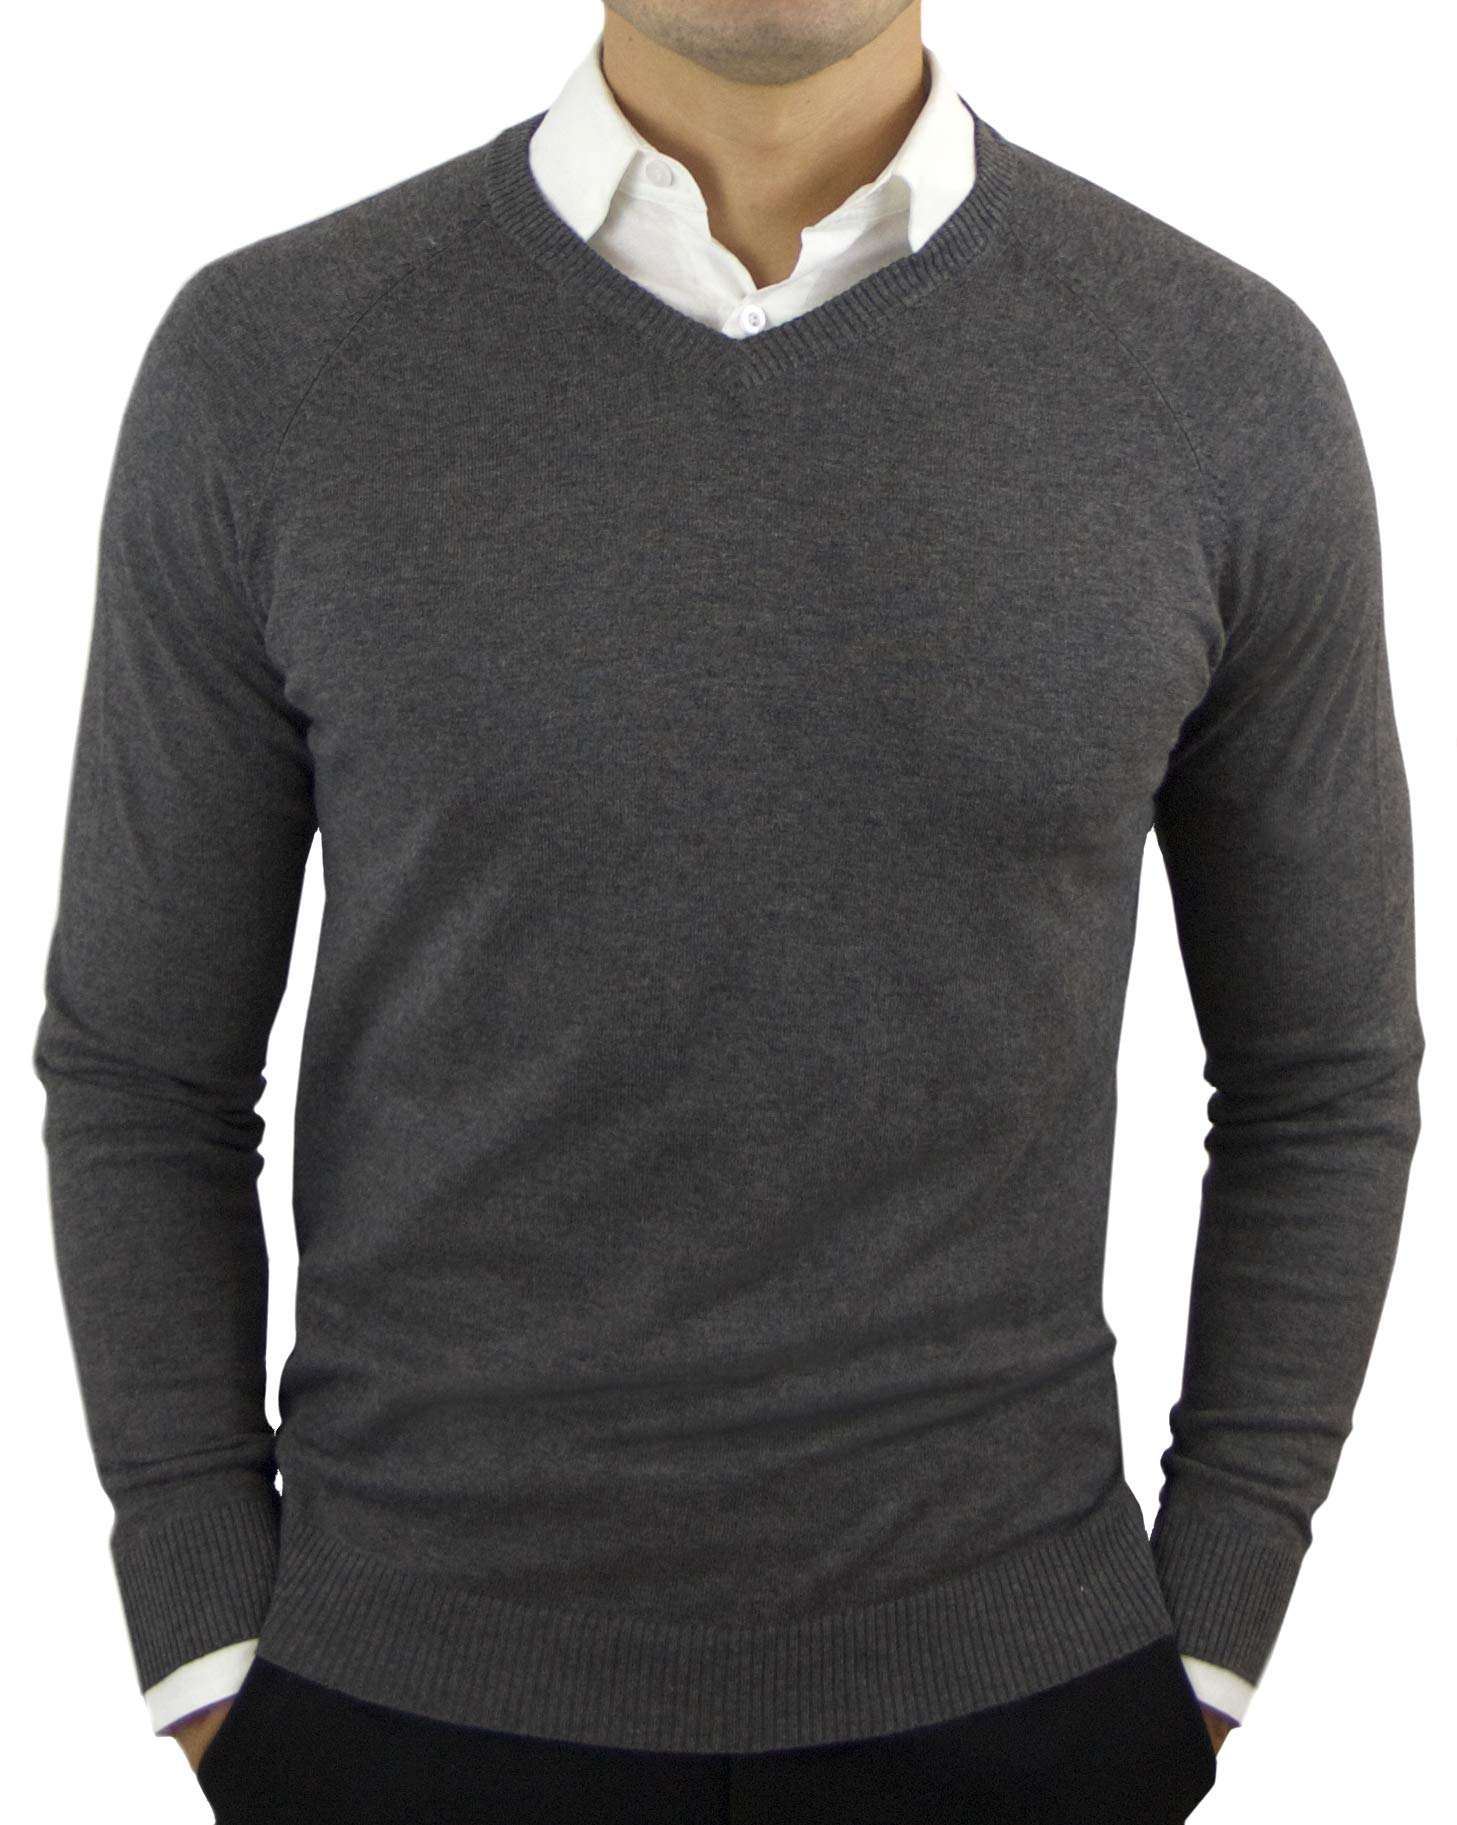 CC Perfect Slim Fit V Neck Sweaters for Men | Lightweight Breathable Mens Sweater | Soft Fitted V-Neck Pullover for Men, Large, Charcoal Grey